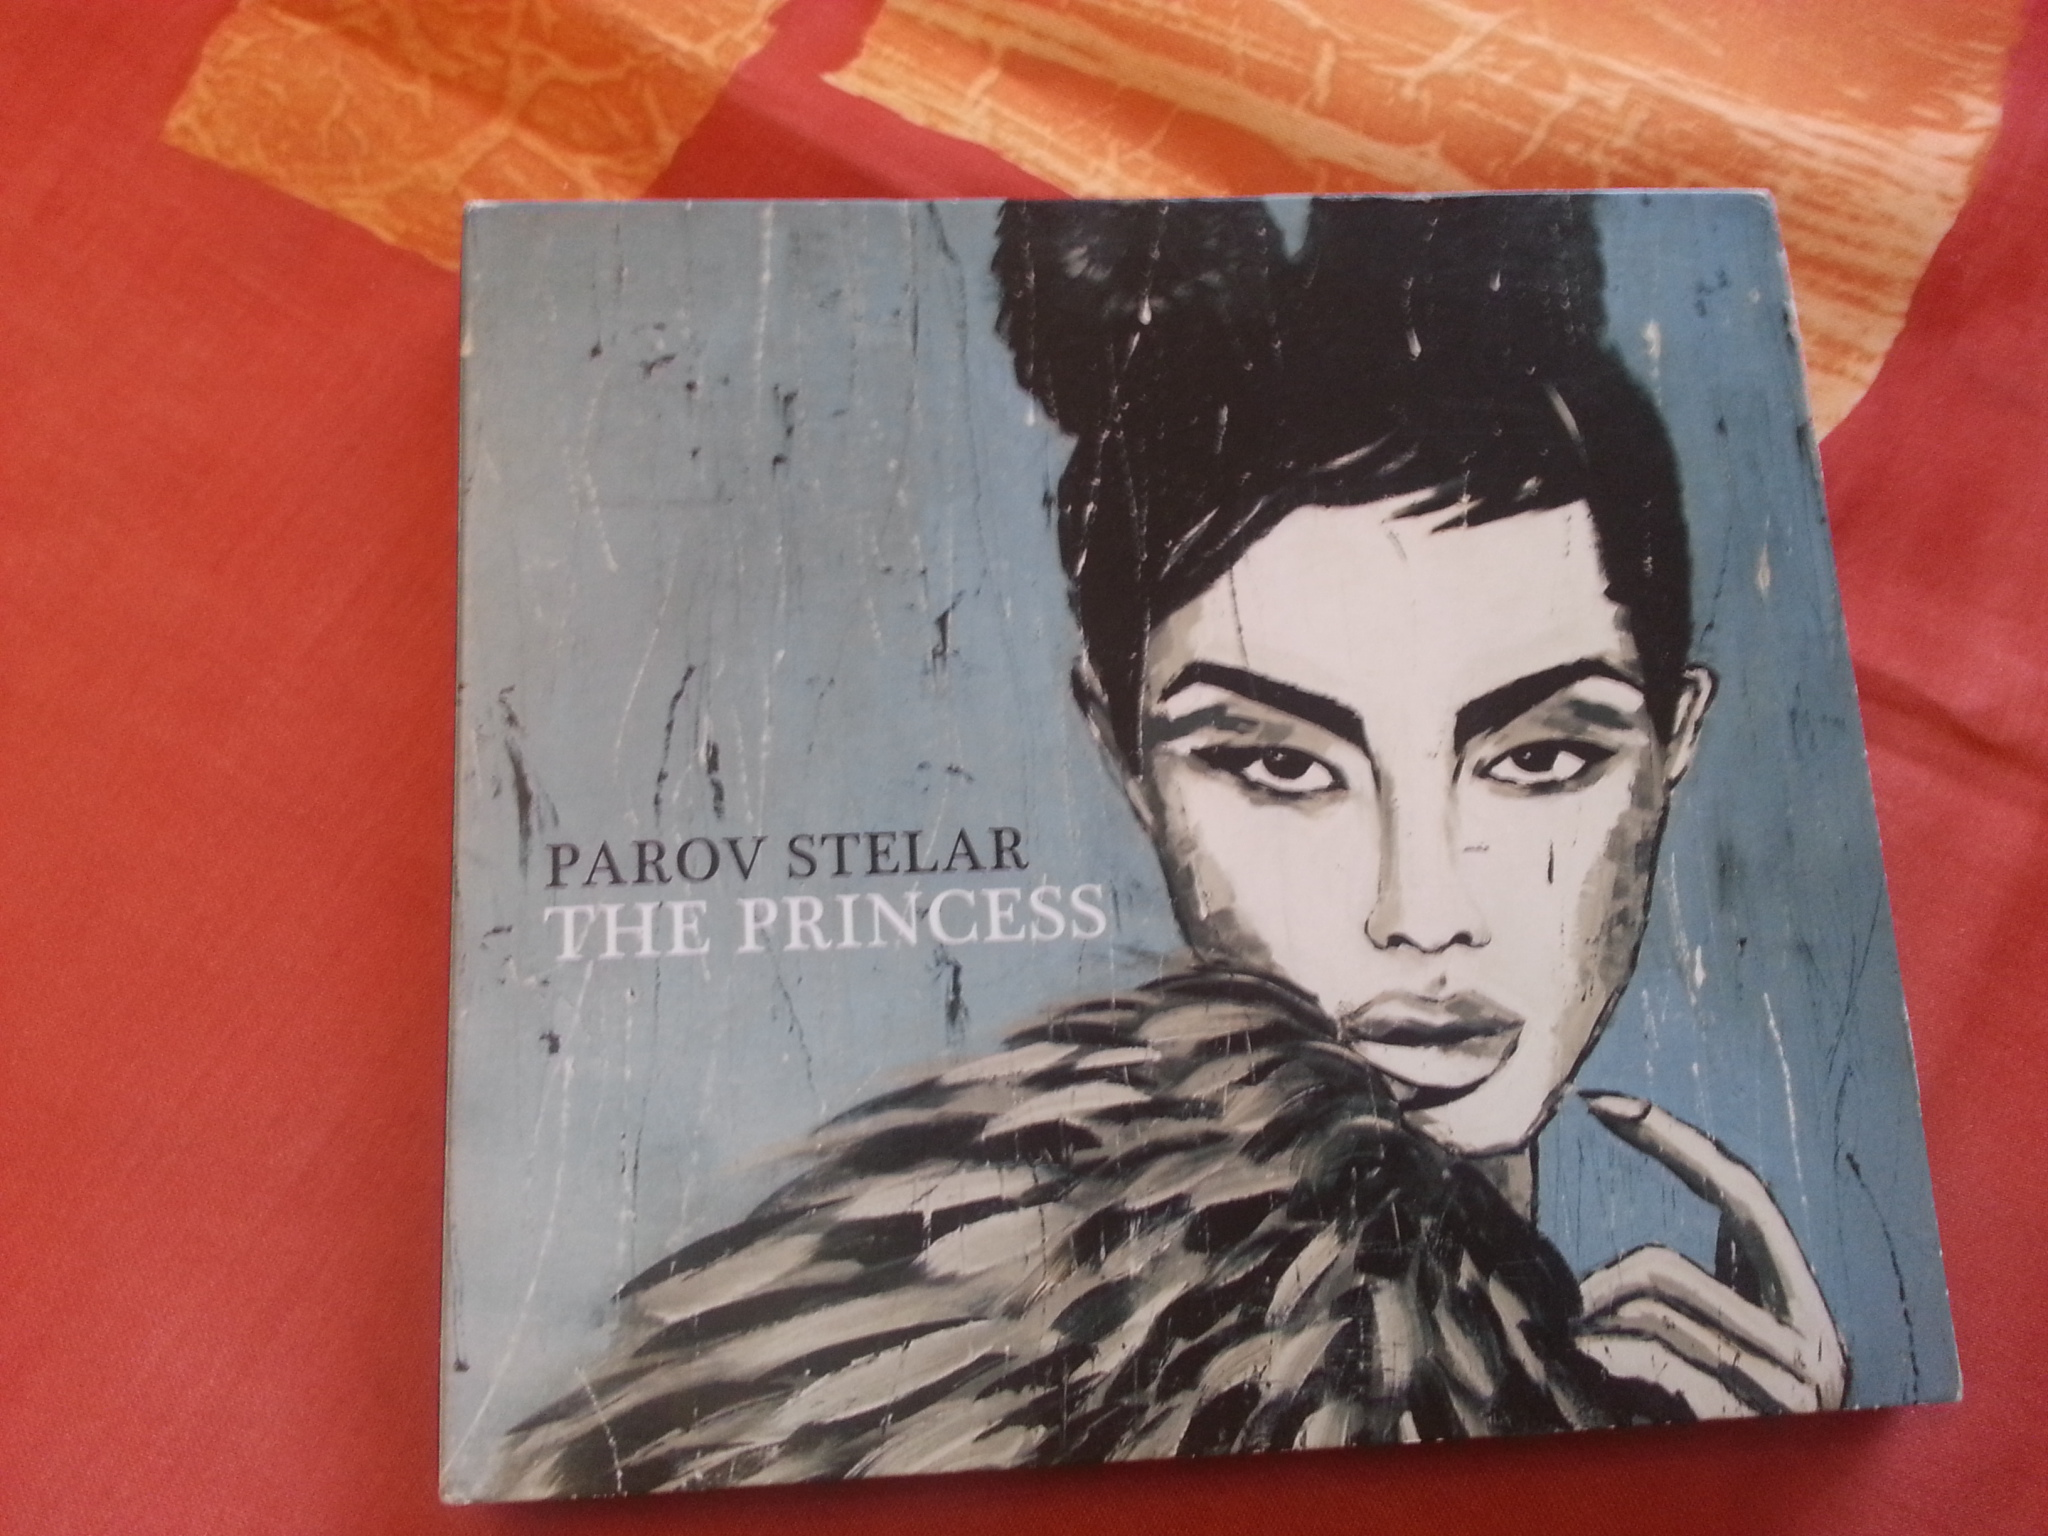 CD: Parov Stelar: The Princess kostenlos